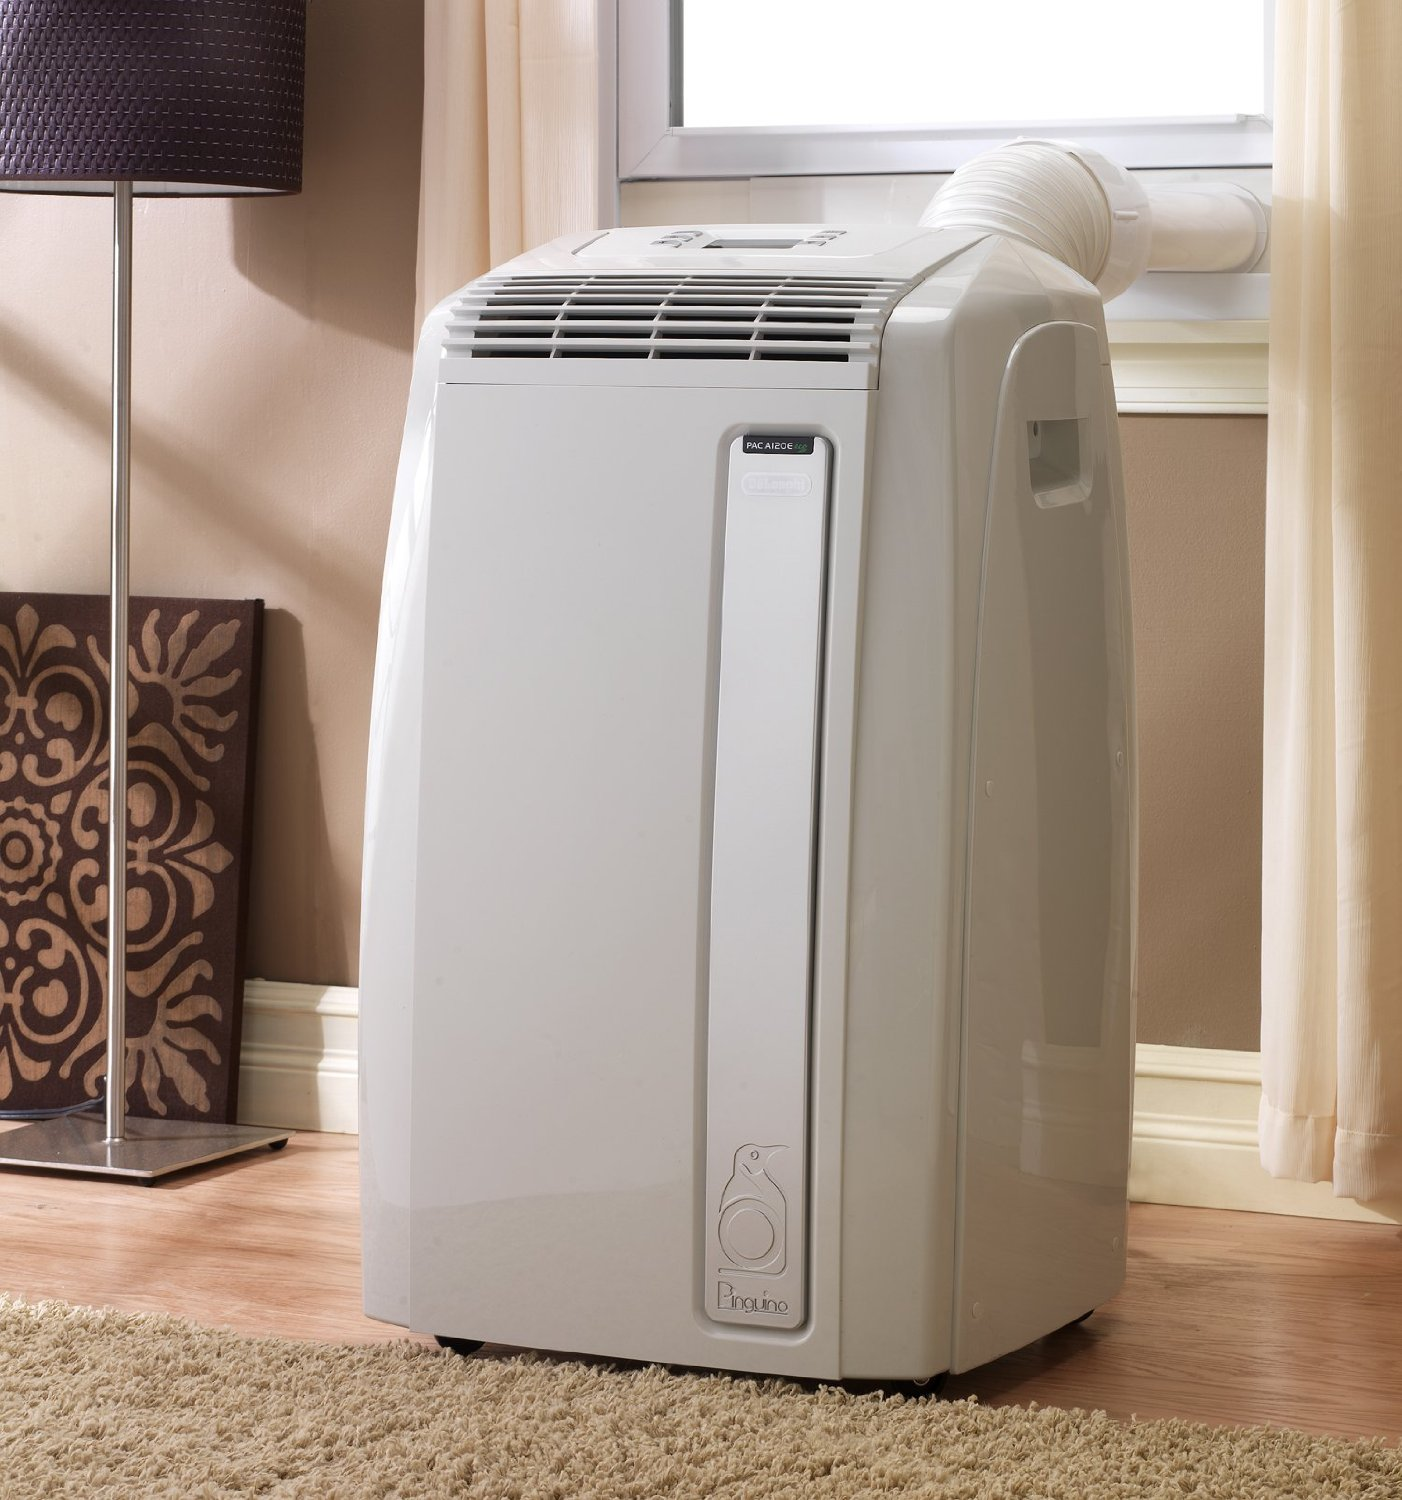 delonghi pac a120e 12 000 btu portable air conditioner paccn120e ebay. Black Bedroom Furniture Sets. Home Design Ideas